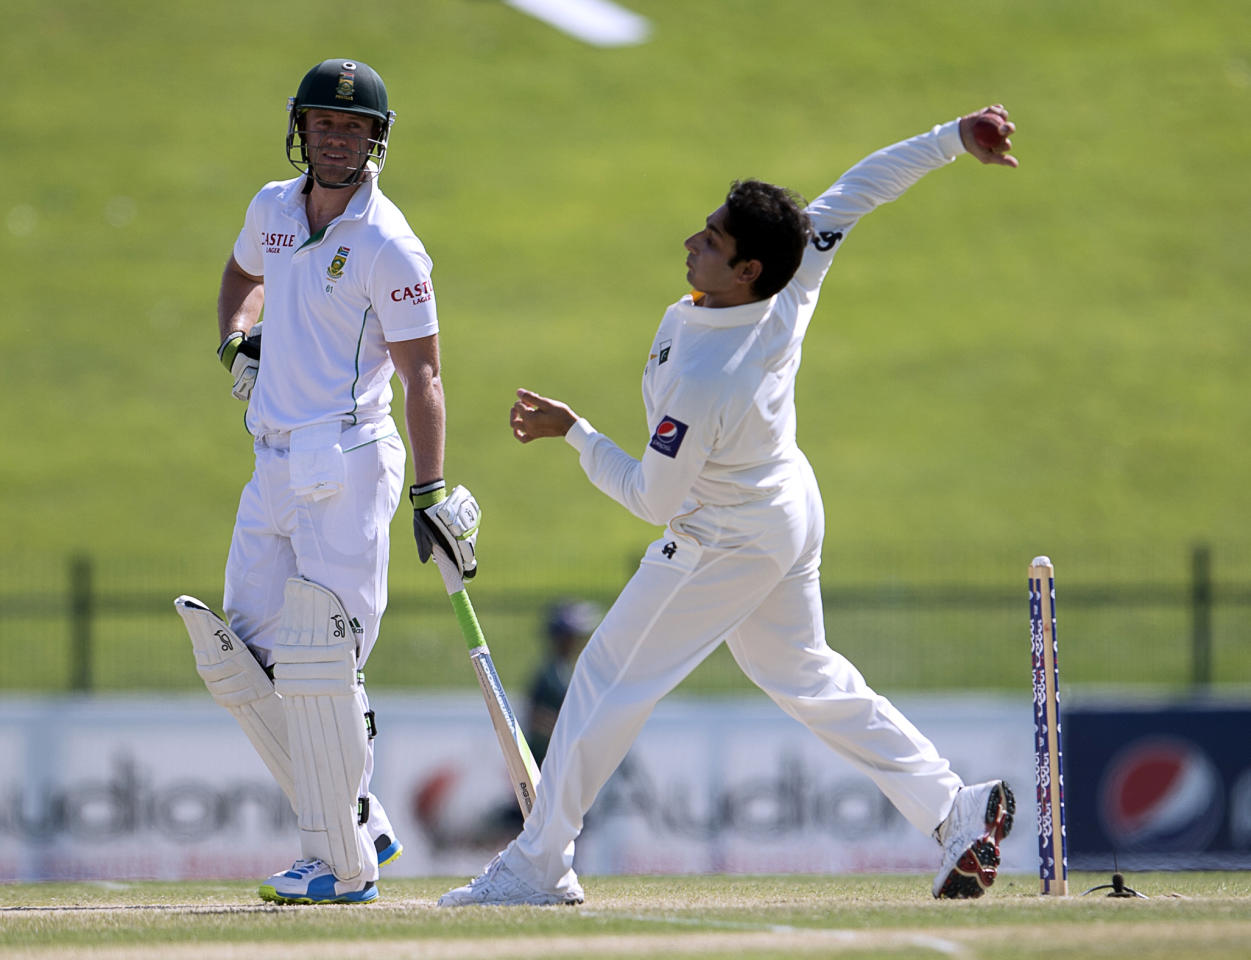 Pakistan's Saeed Ajmal bows as South Africa's batsman Ab de Villiers watches on the fourth day of their first Test against South Africa at the Sheikh Zayed Cricket Stadium in Abu Dhabi on October 17, 2013. AB de Villiers hit a fighting fifty to delay Pakistan's victory march over South Africa on the fourth day of the first Test in Abu Dhabi today. AFP PHOTO/STR        (Photo credit should read STR/AFP/Getty Images)